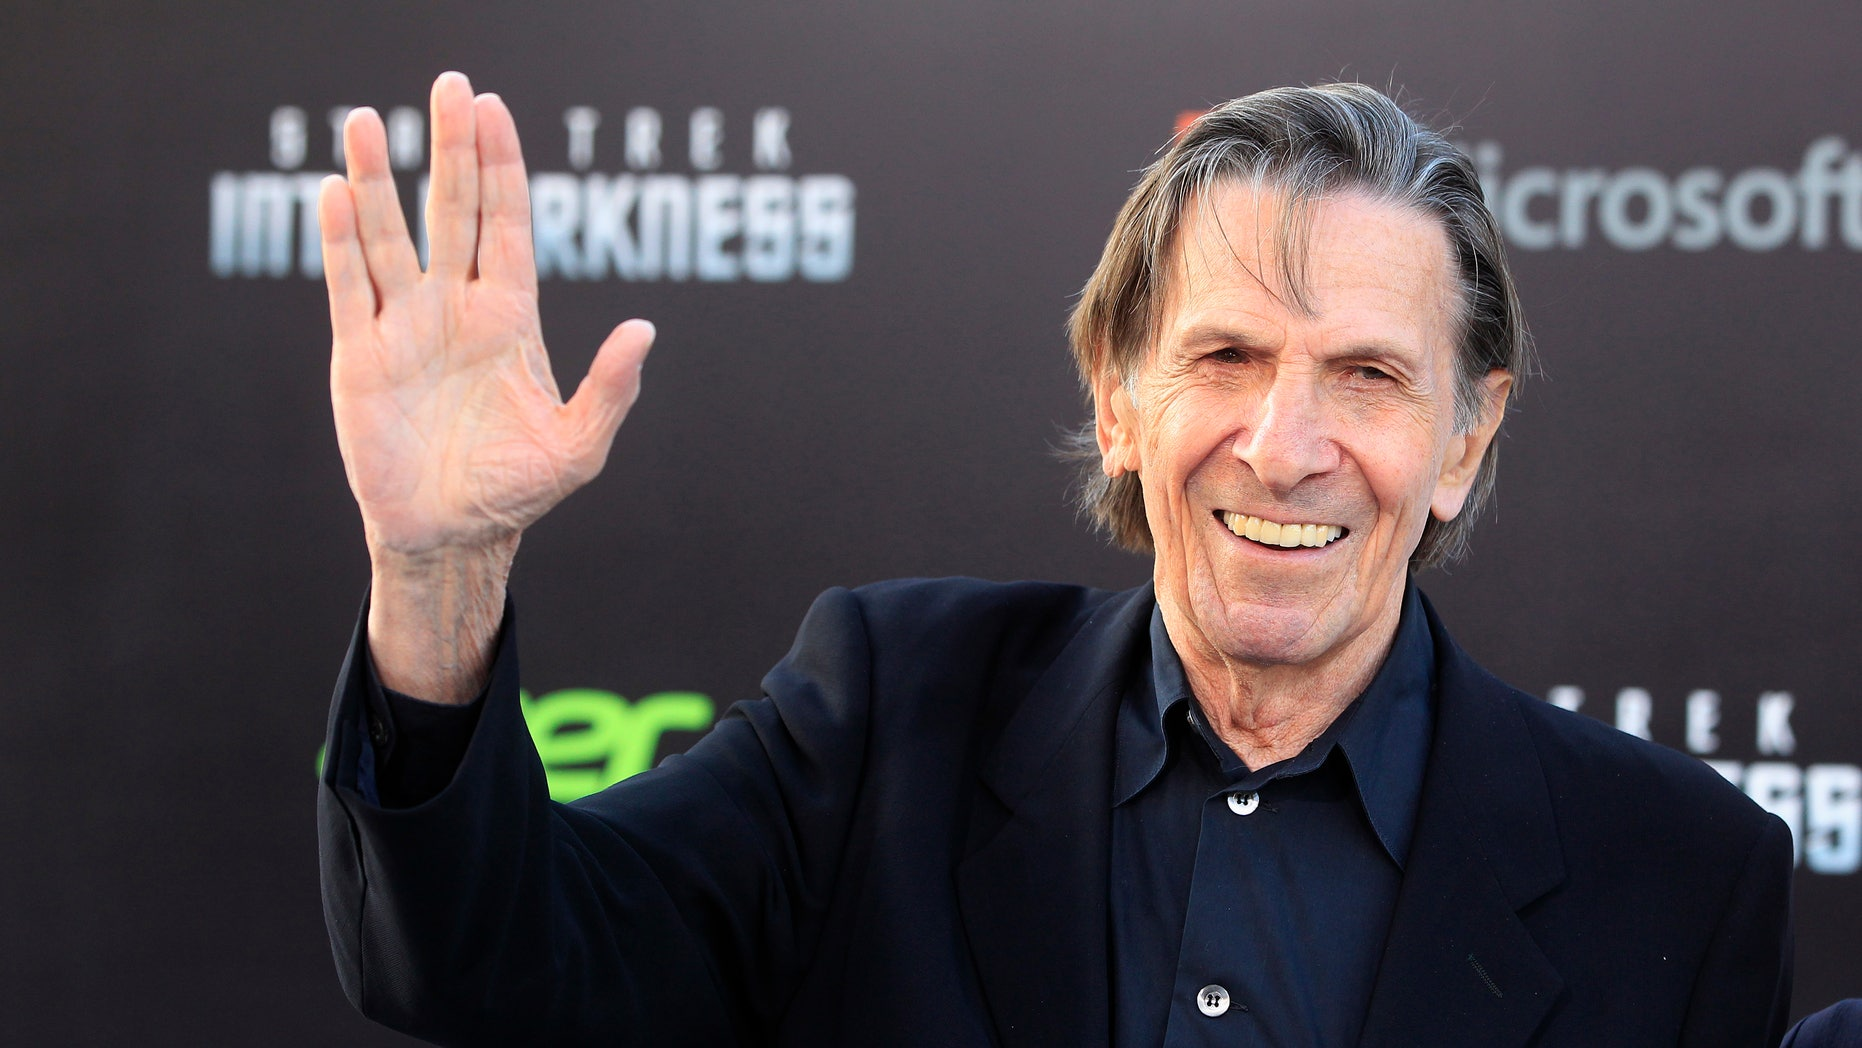 """May 14, 2013. Leonard Nimoy, cast member of the new film """"Star Trek Into Darkness,"""" poses as he arrives at the film's premiere in Hollywood."""